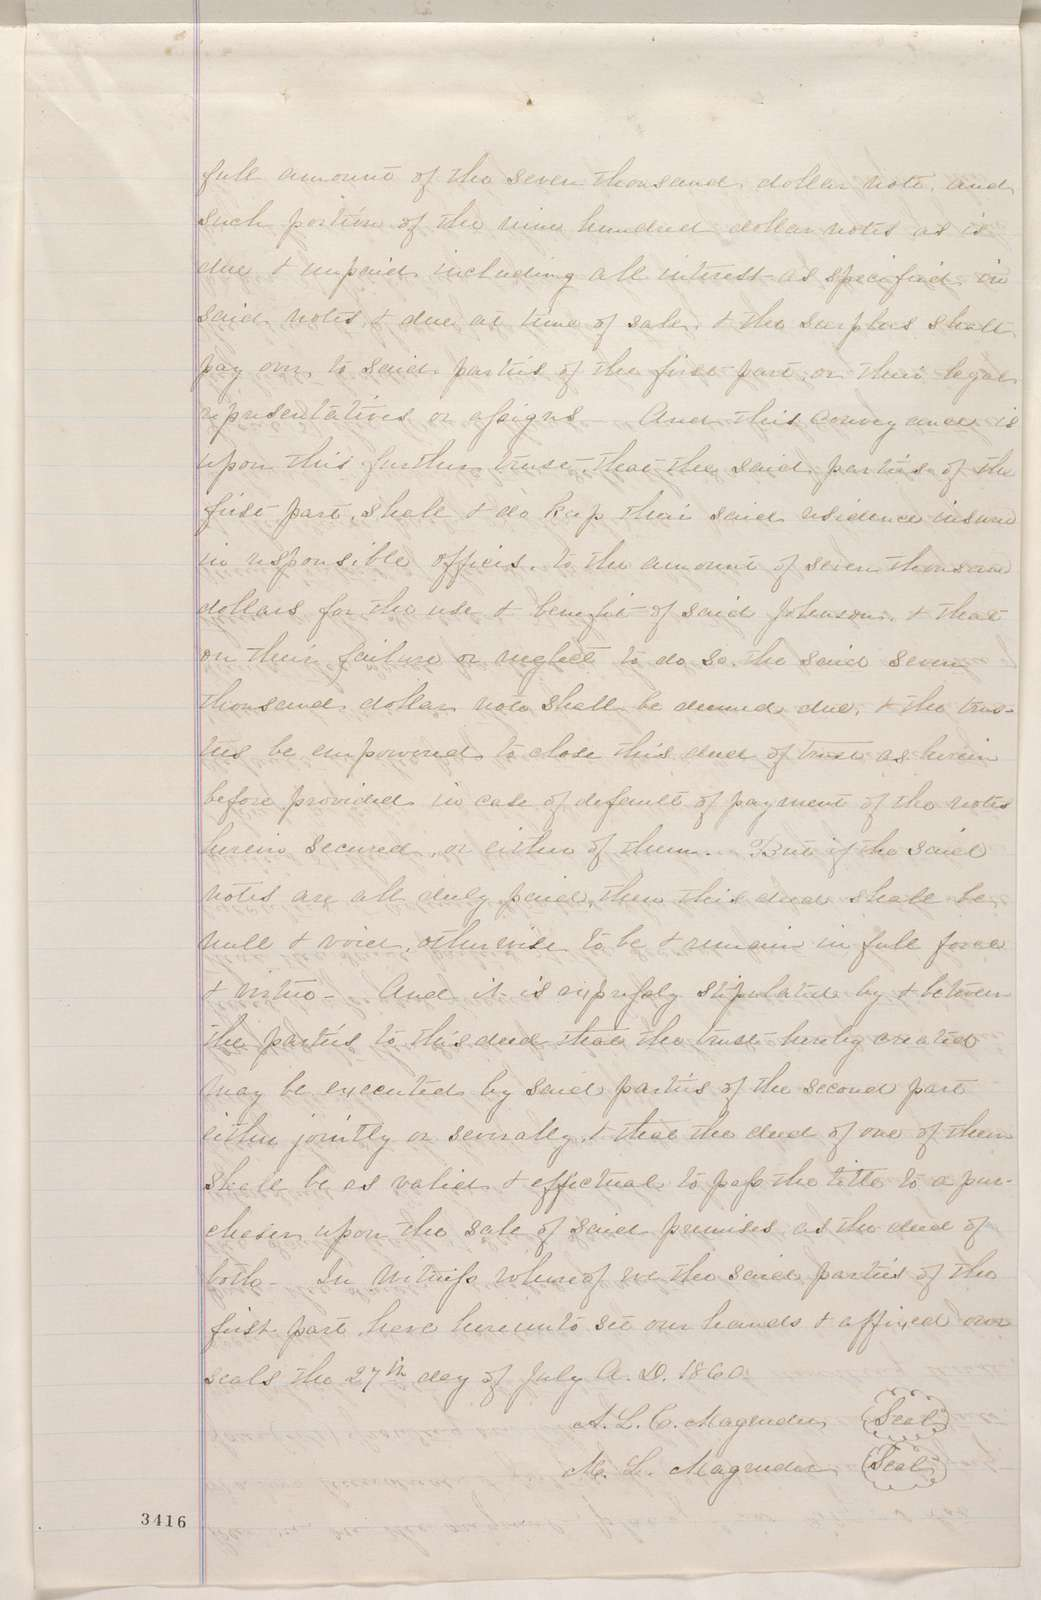 Abraham Lincoln papers: Series 1. General Correspondence. 1833-1916: A. L. C. Magruder and Maria Louisa Magruder, Wednesday, August 29, 1860 (Extract of deed)